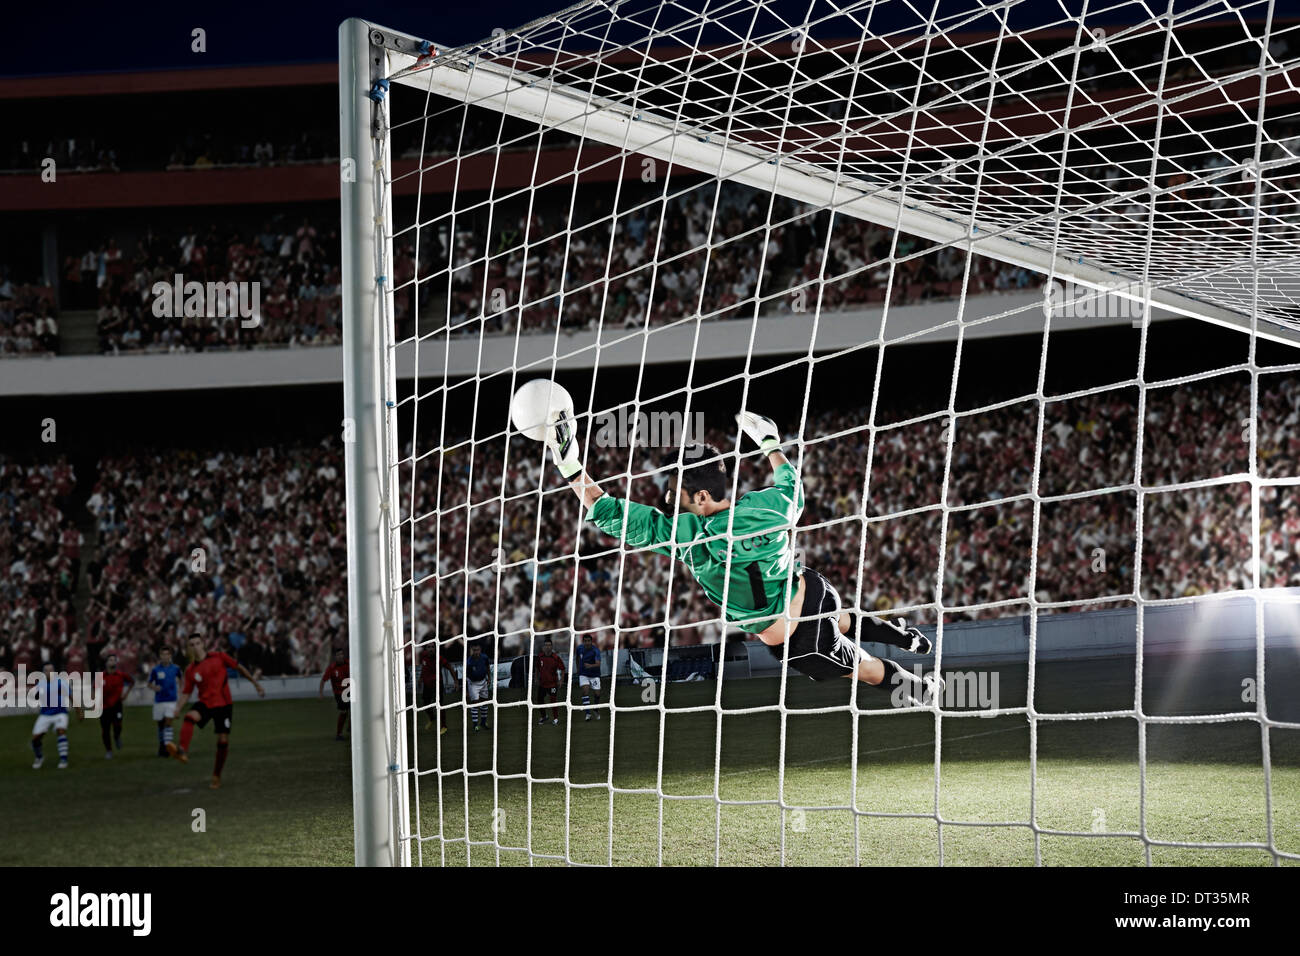 Goalie defending soccer net on field - Stock Image